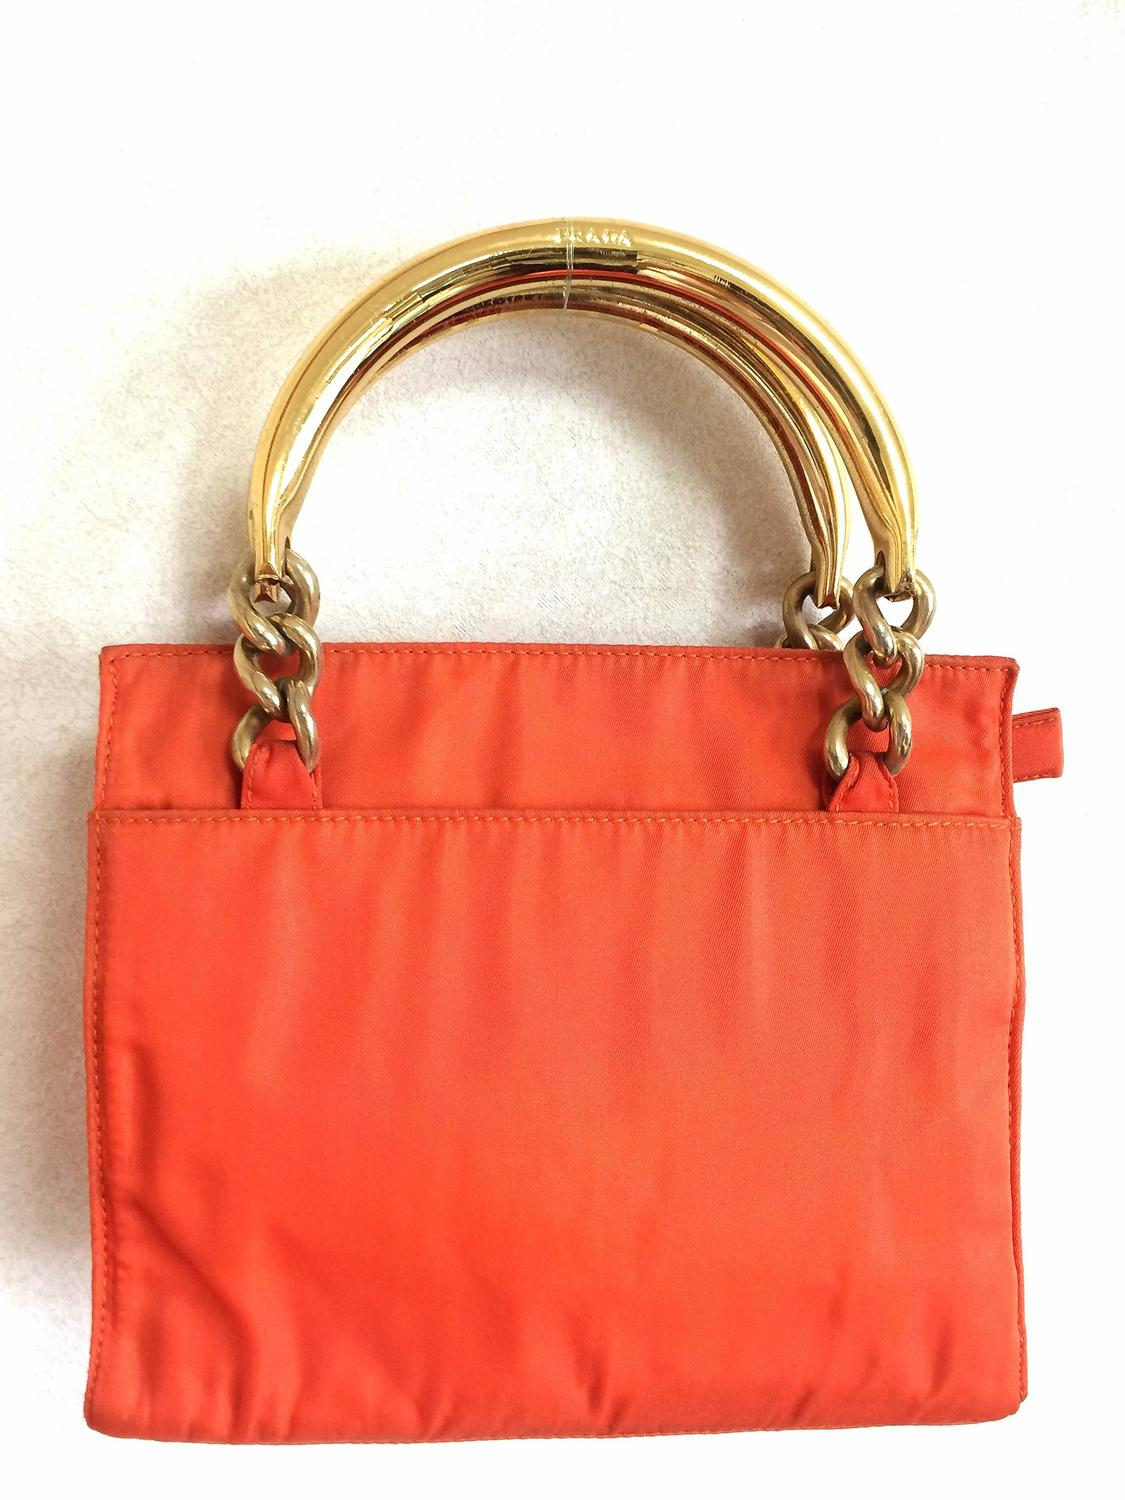 b27dd1e9d4cd Prada Golden Handle Nylon Tote Bags Pictures | Stanford Center for ...